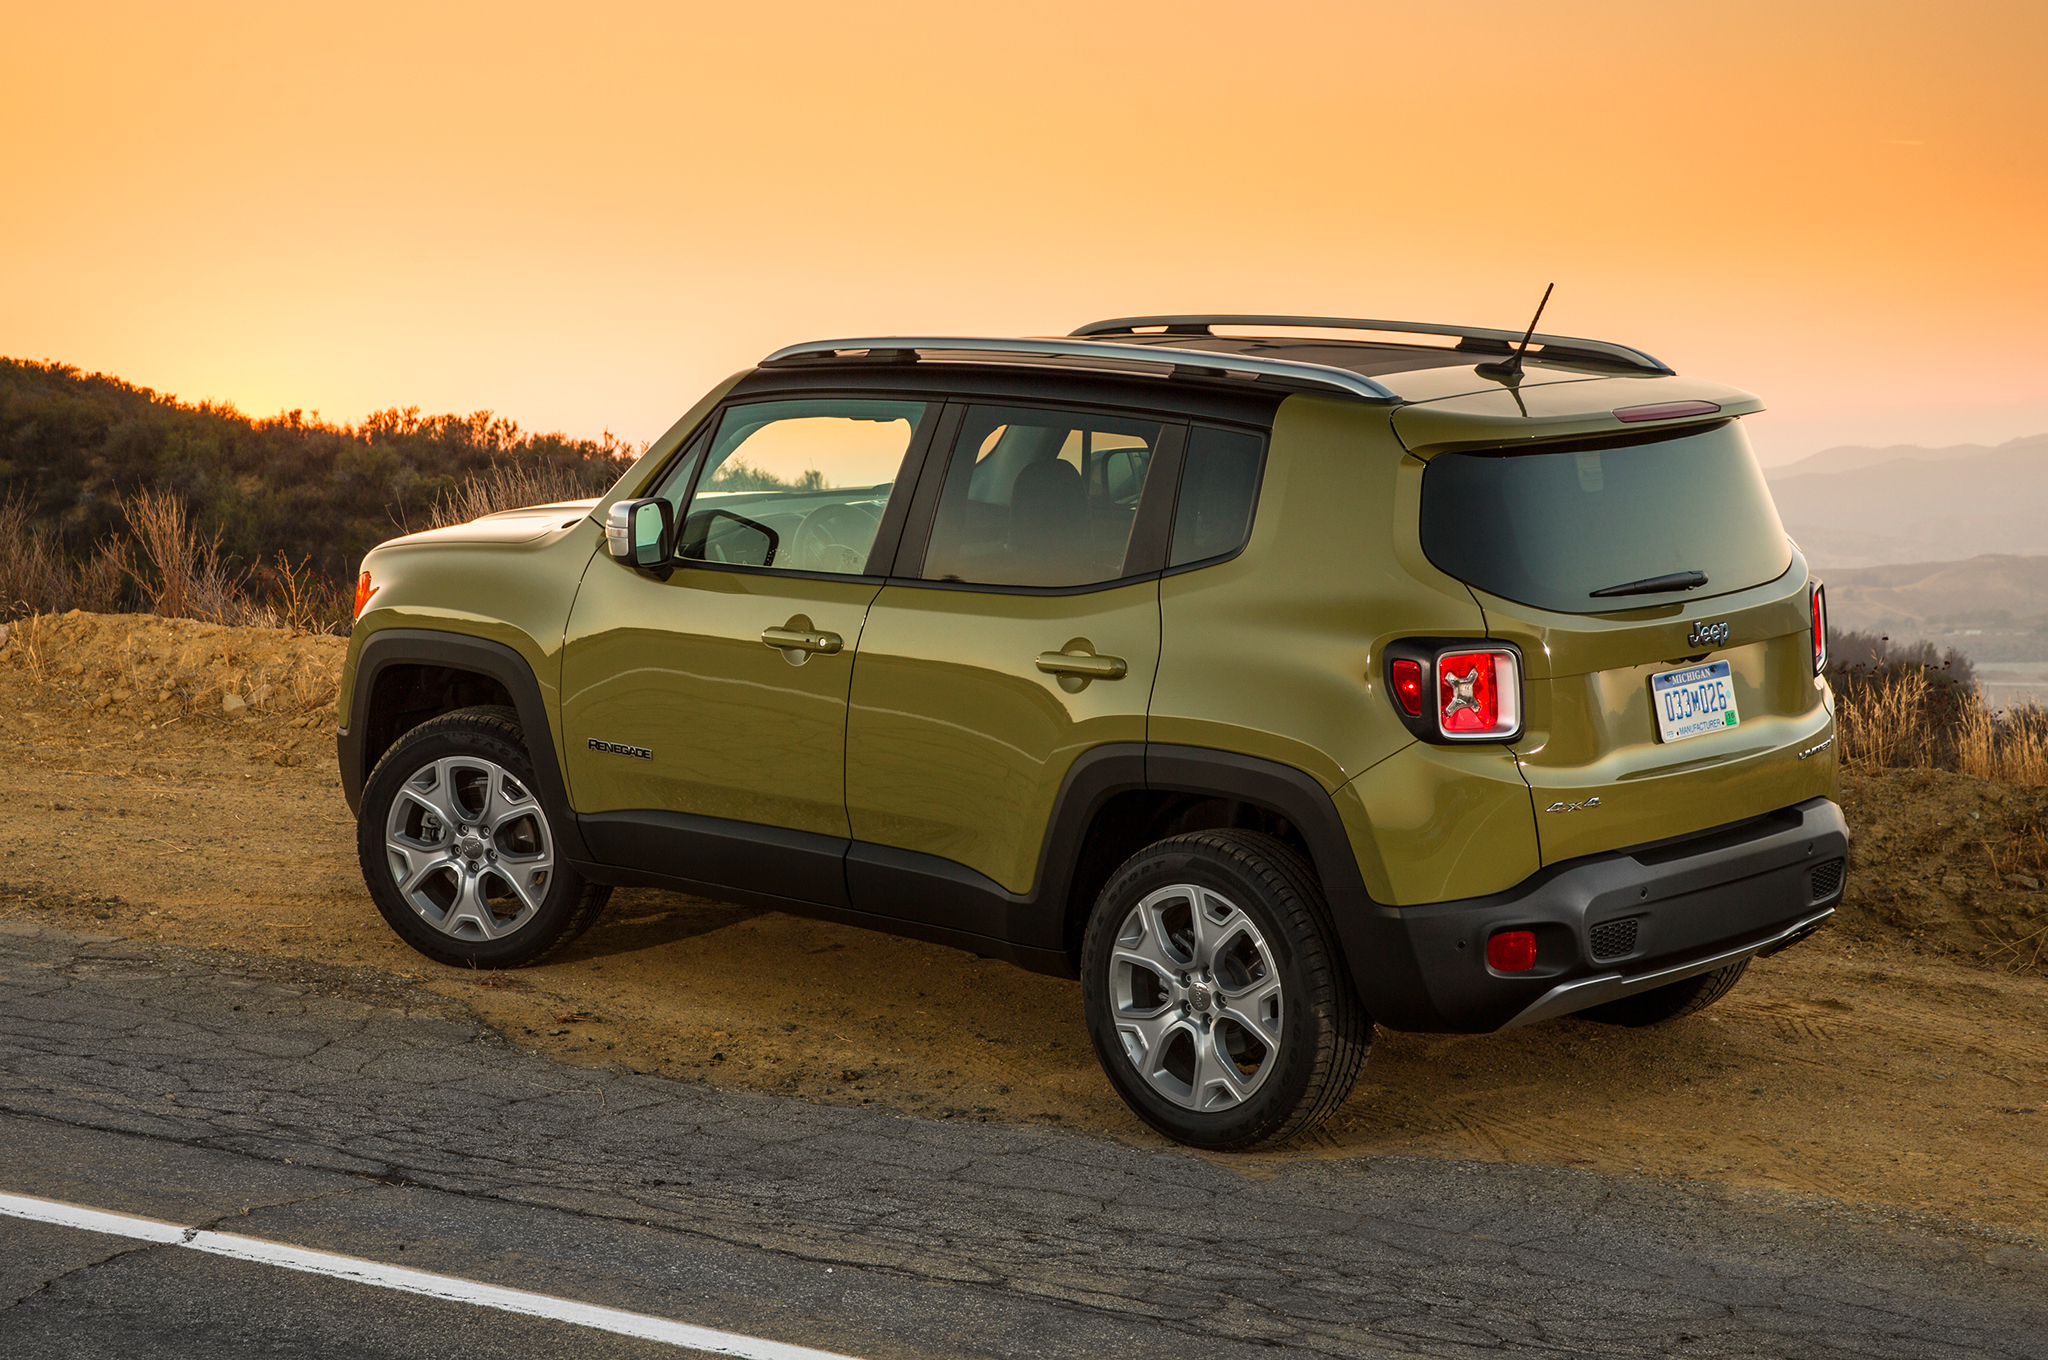 Jeep Renegade 4—4 Limited – The Car Diva